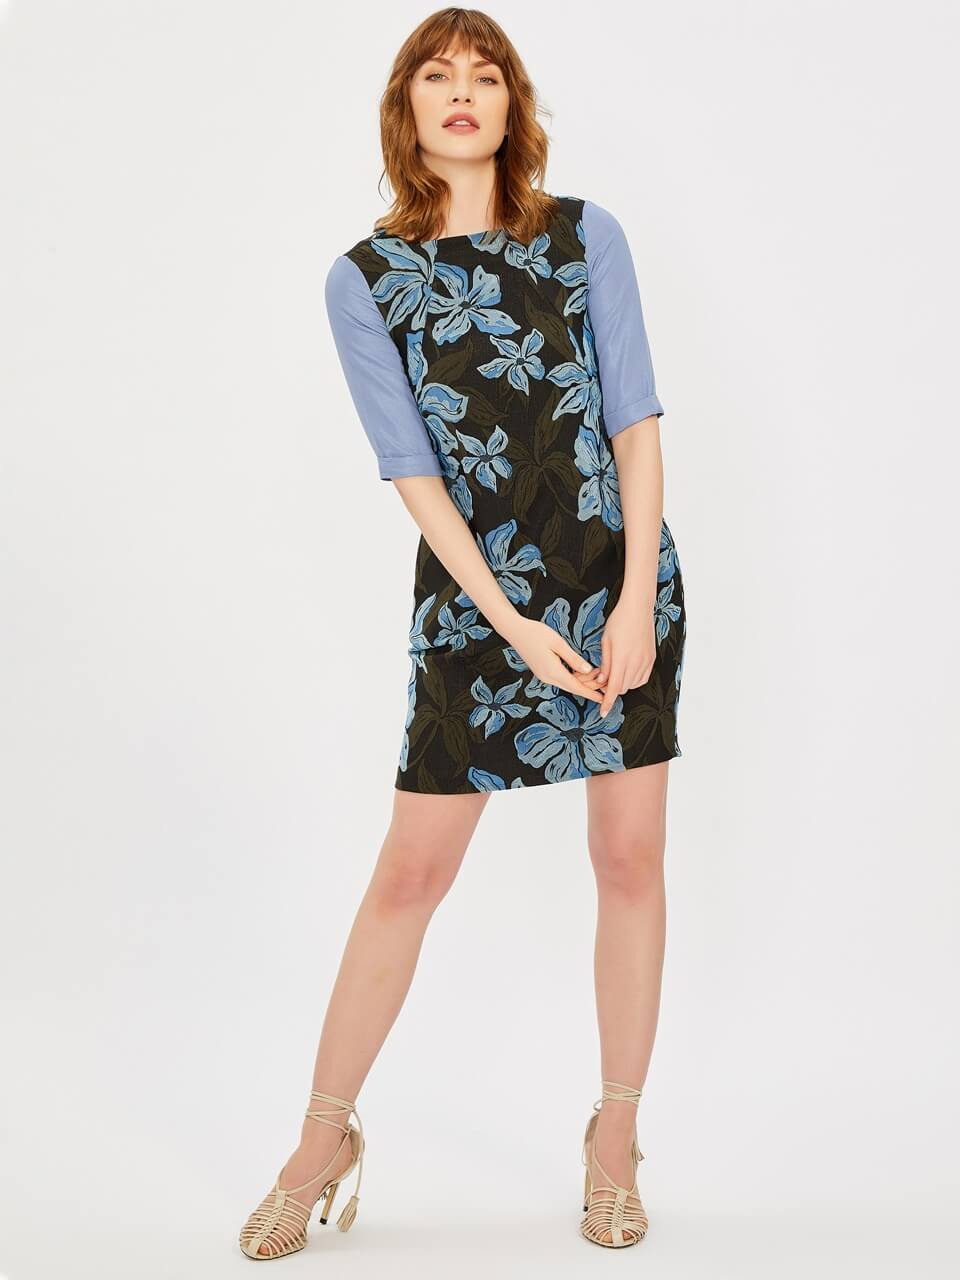 Floral Patterned Dress With Jacquared